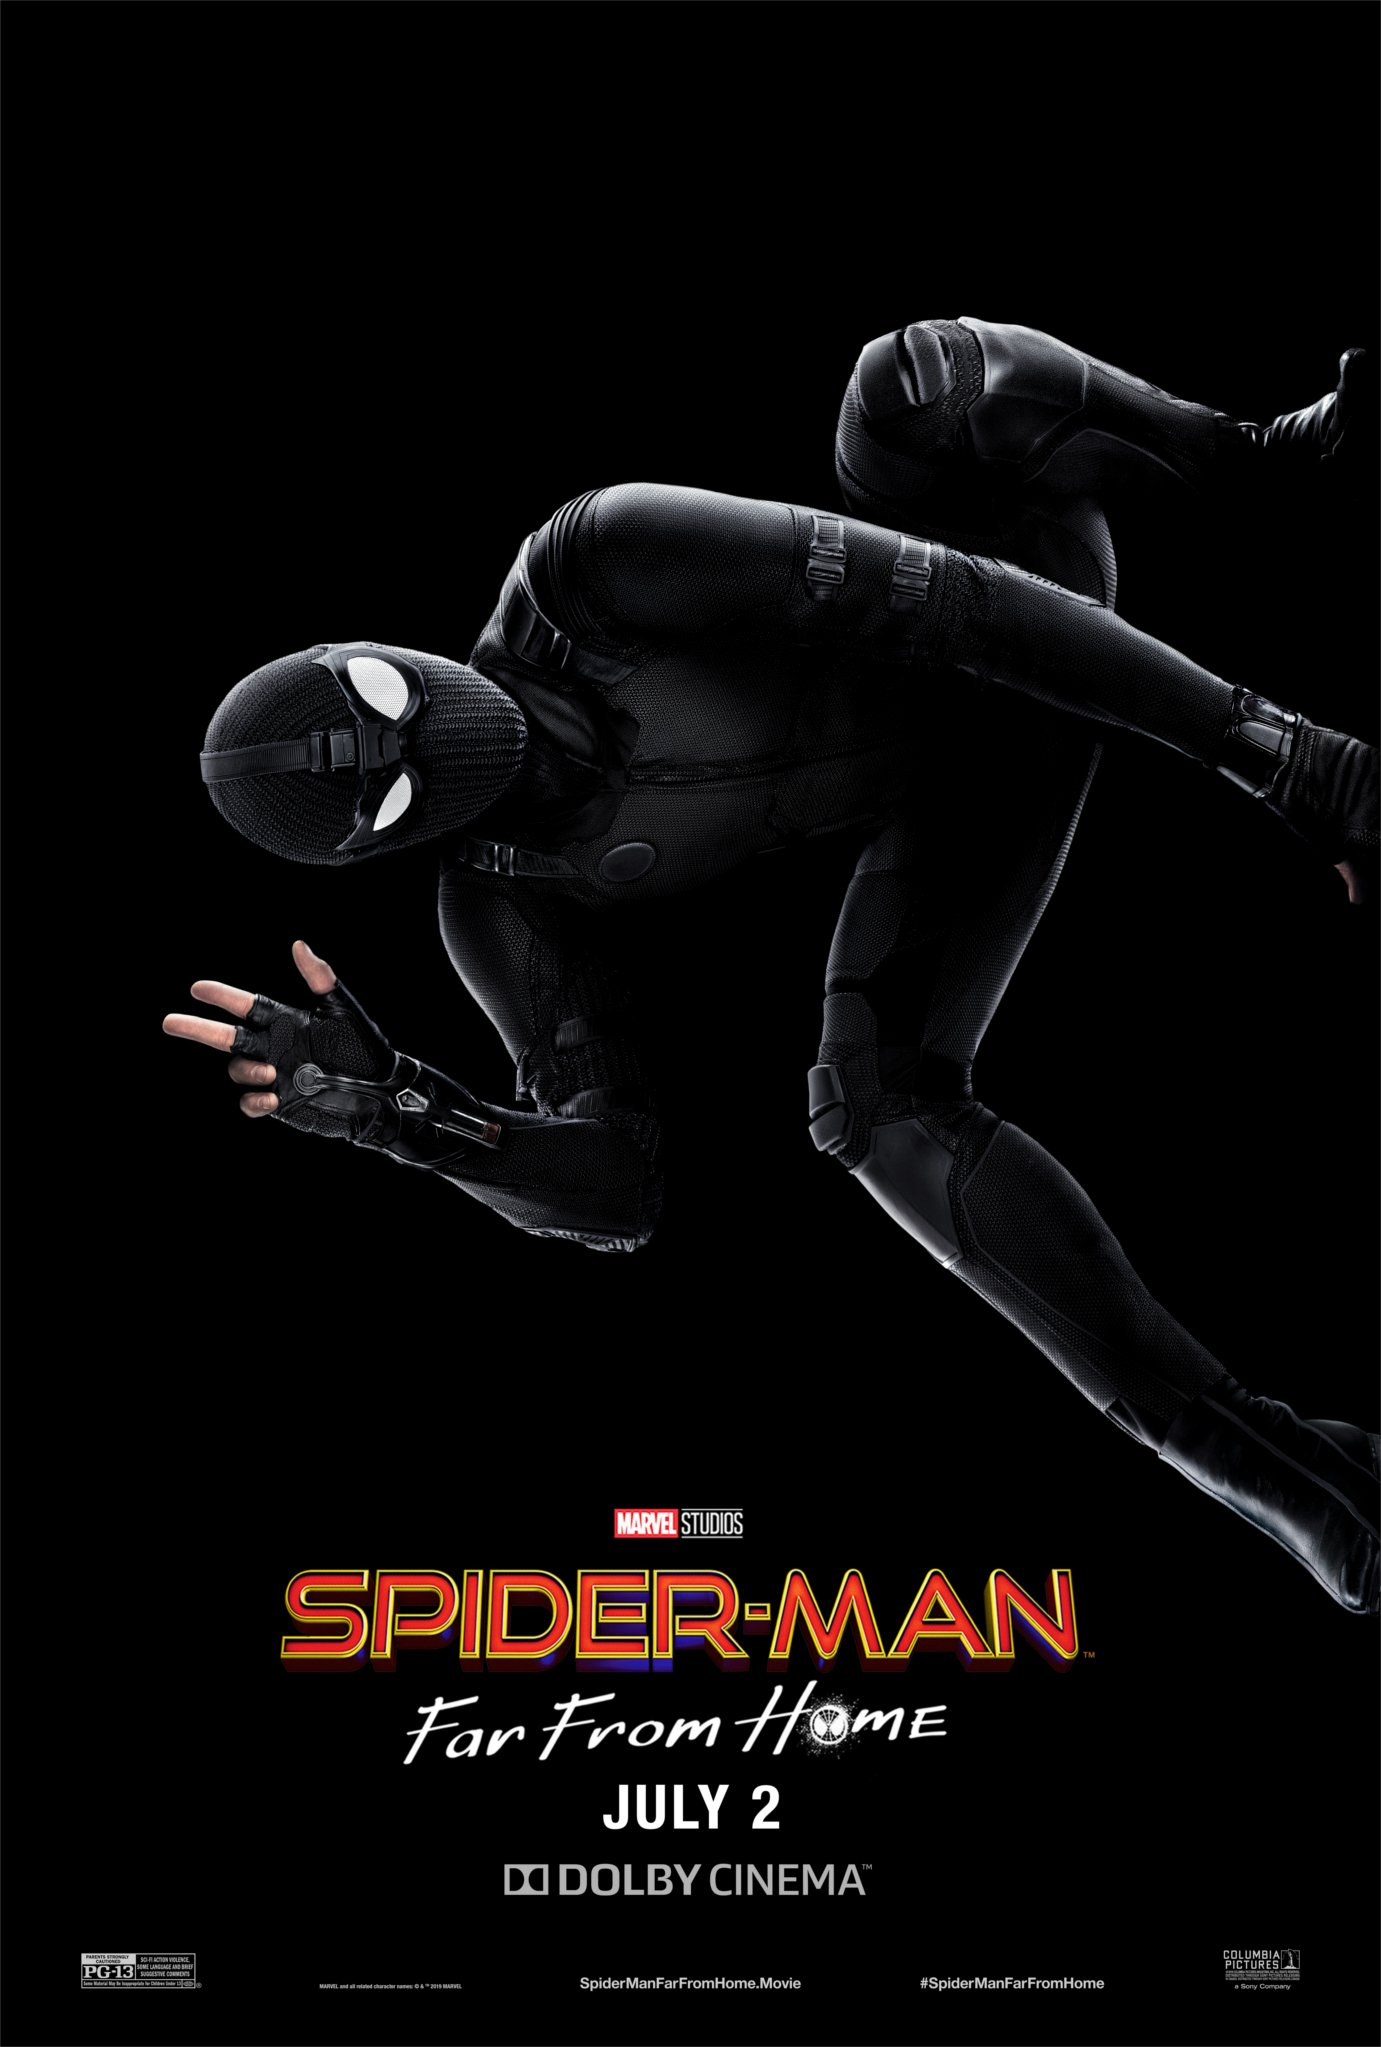 spider-man far from home stealth suit plakat / Filmz.dk